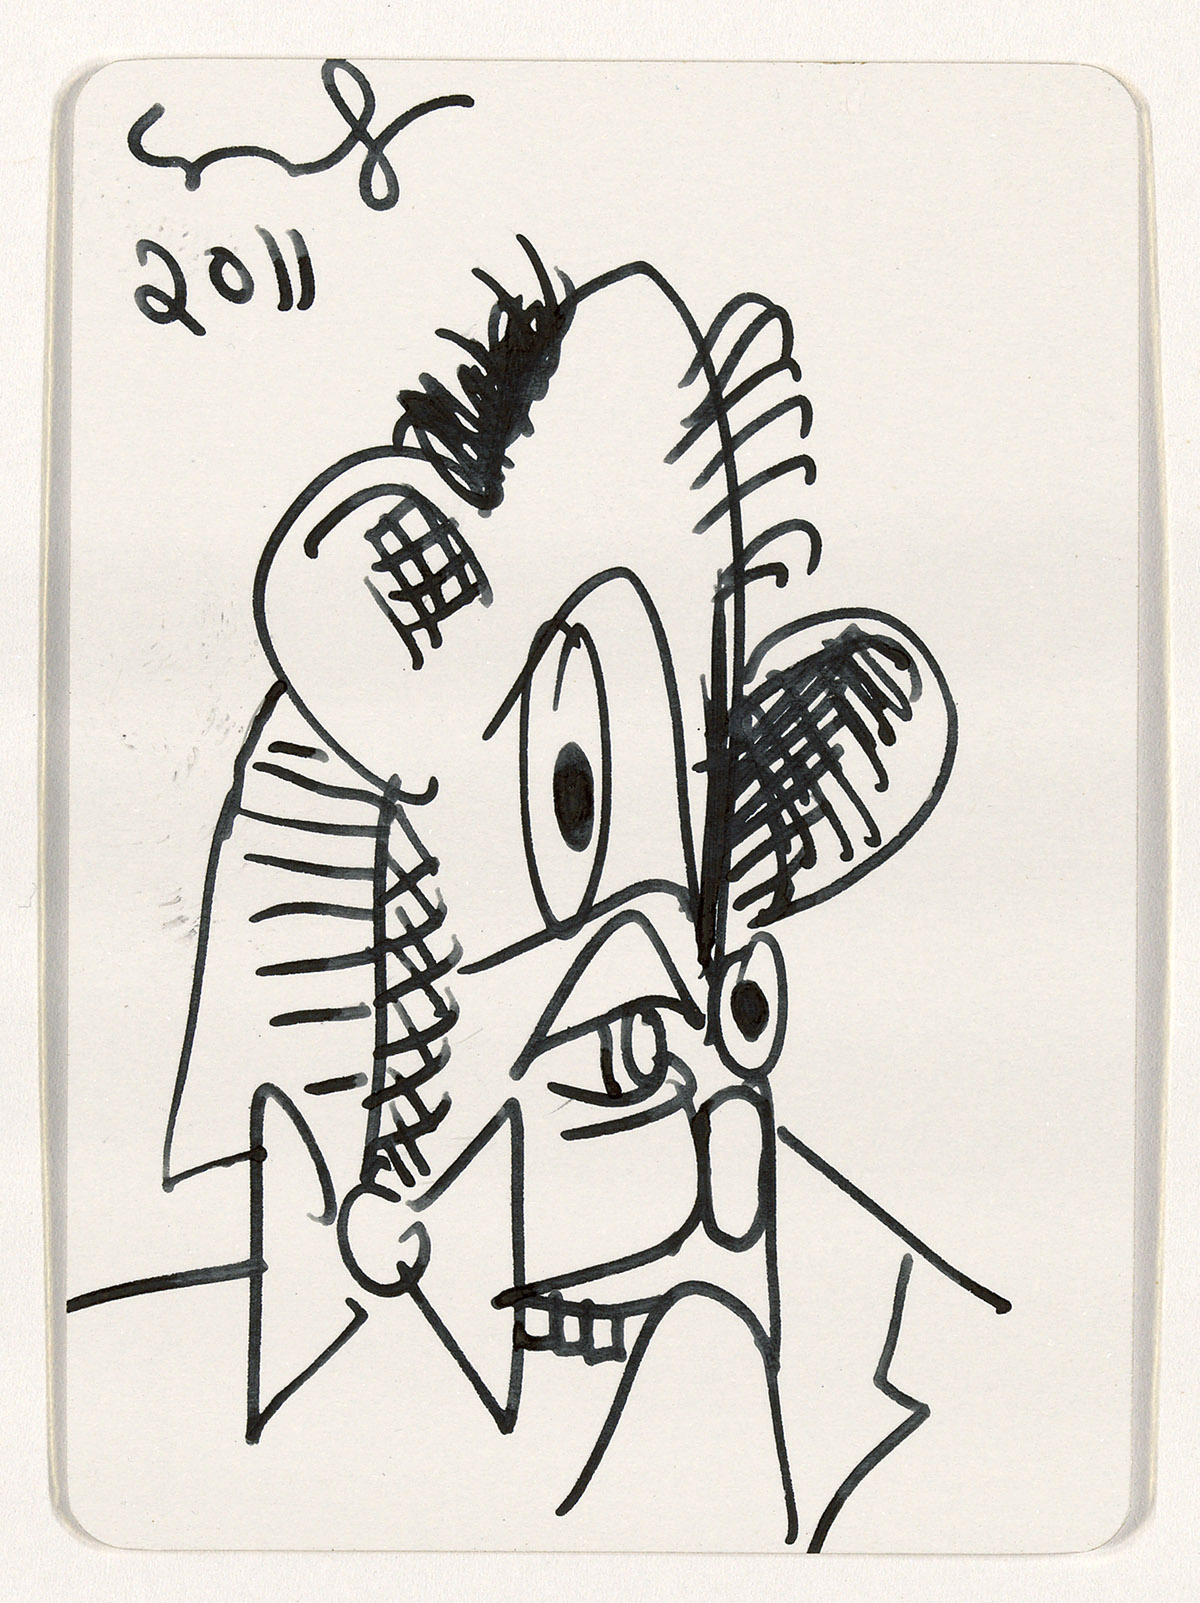 GEORGE-CONDO-Untitled-(Mental-States-Playing-Card-Drawing)